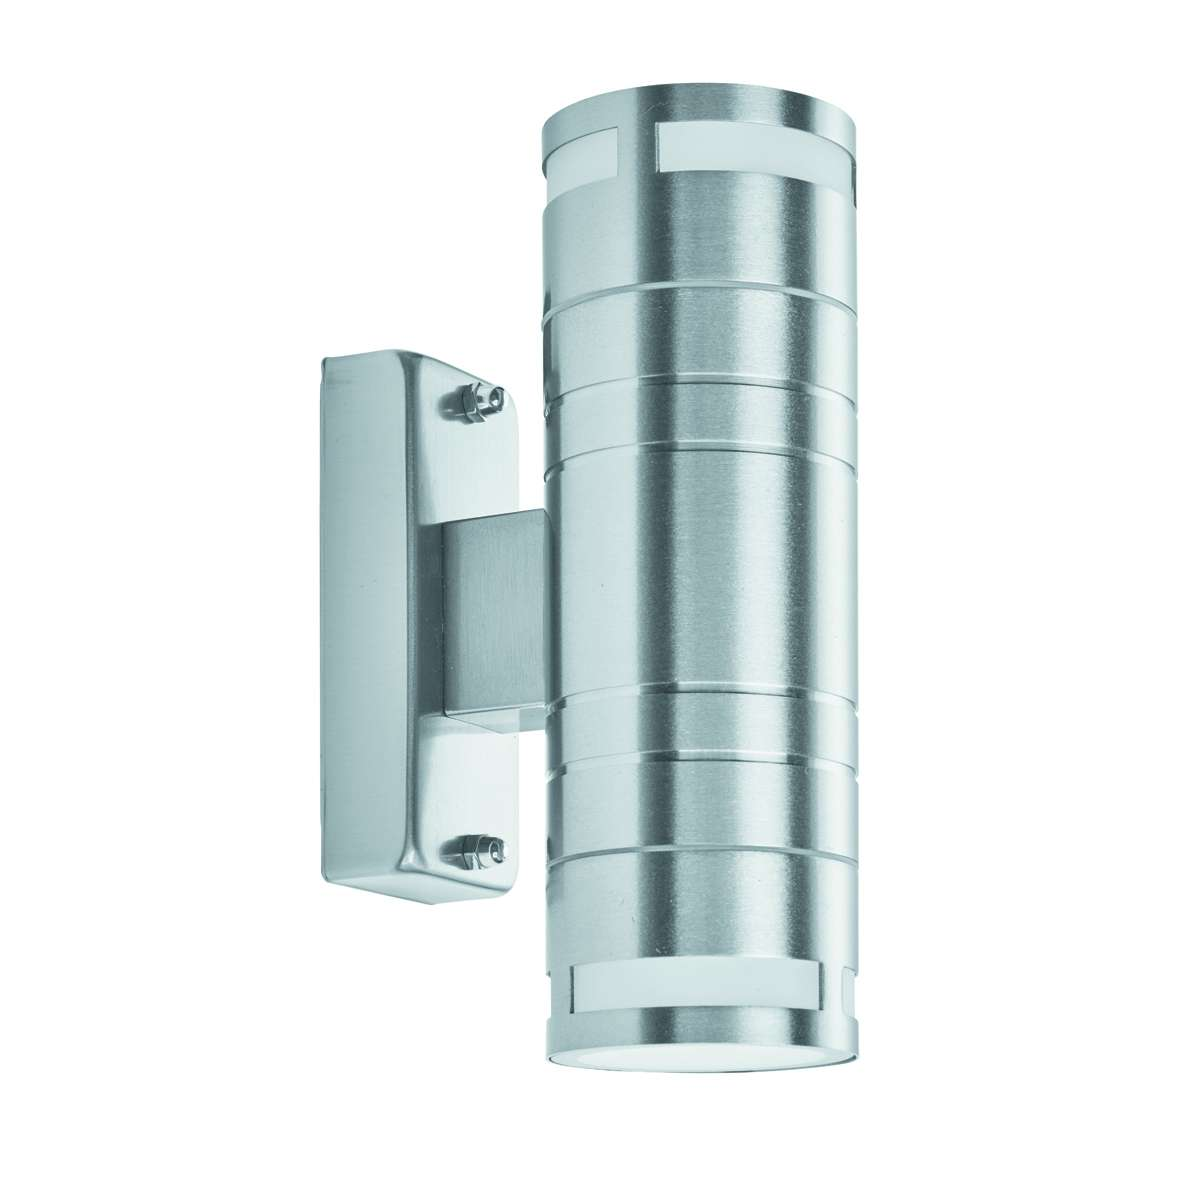 Ip44 StainlessSteel 2 Light Outdoor Wall Light With Clear Glass